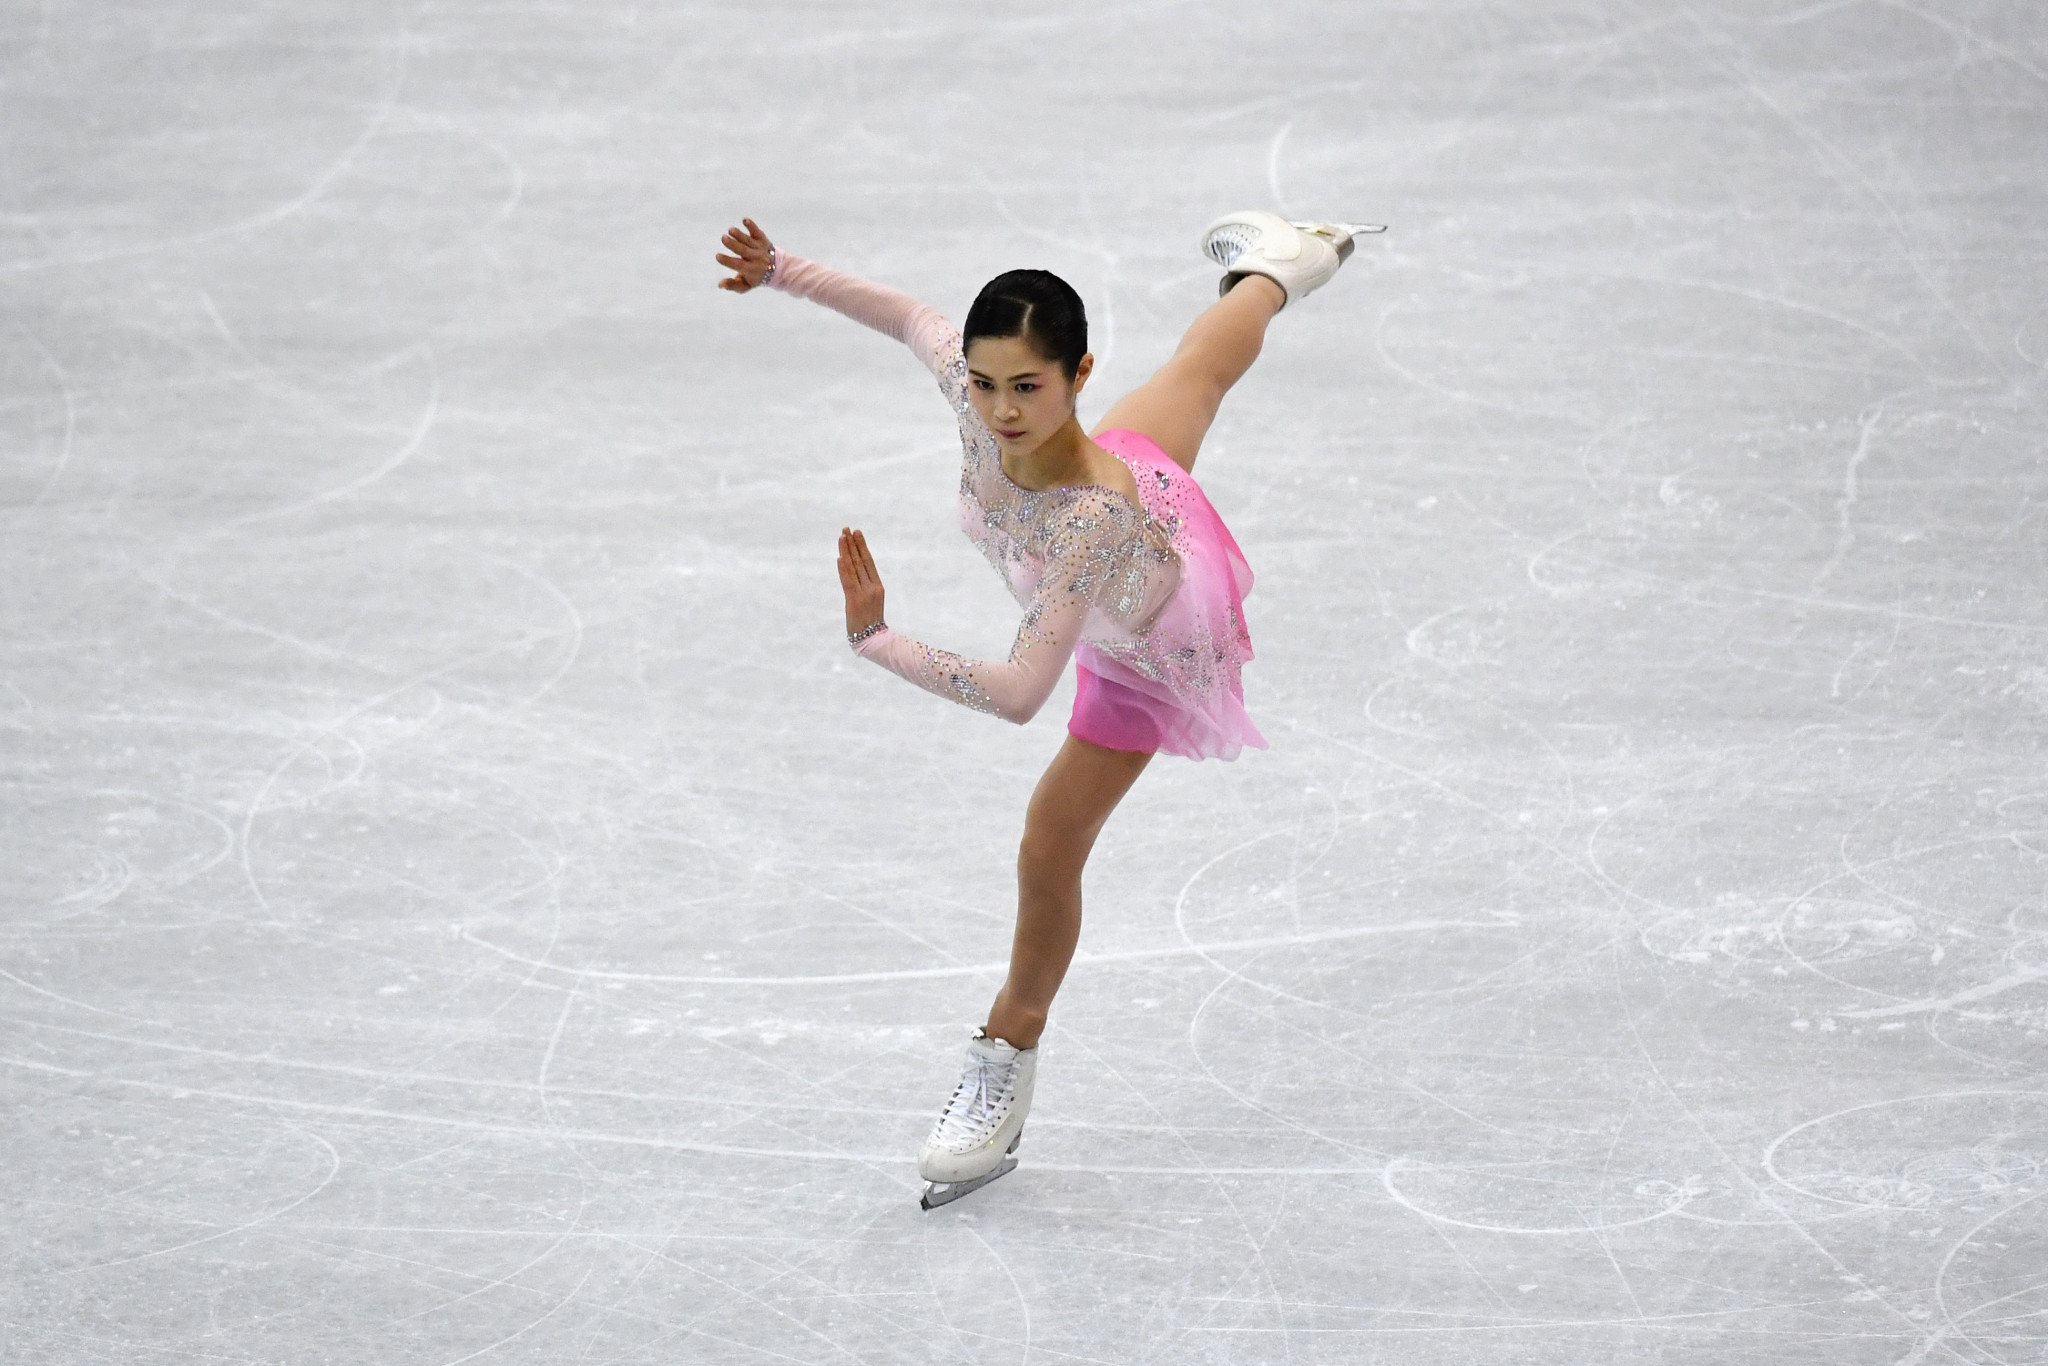 Miyahara triumphs on opening day of ISU Four Continents Figure Skating Championships